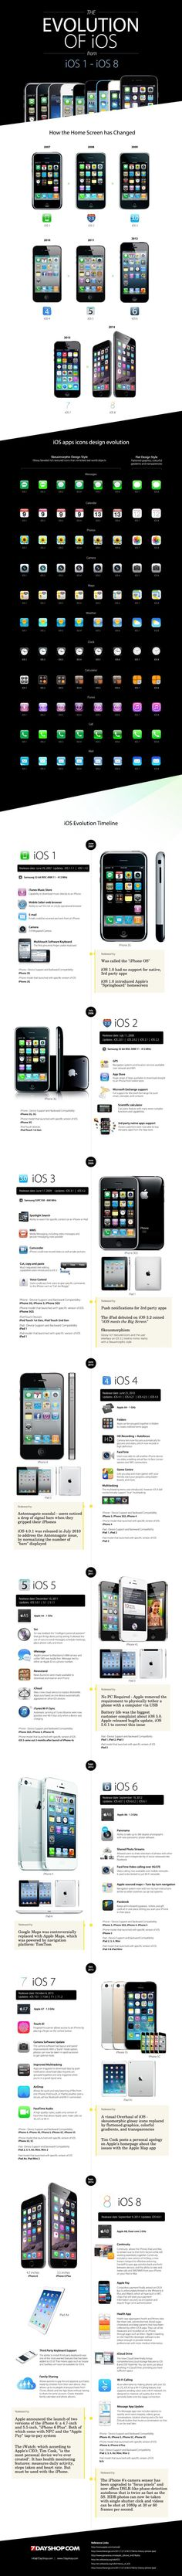 In depth analysis of the evolution of iOS